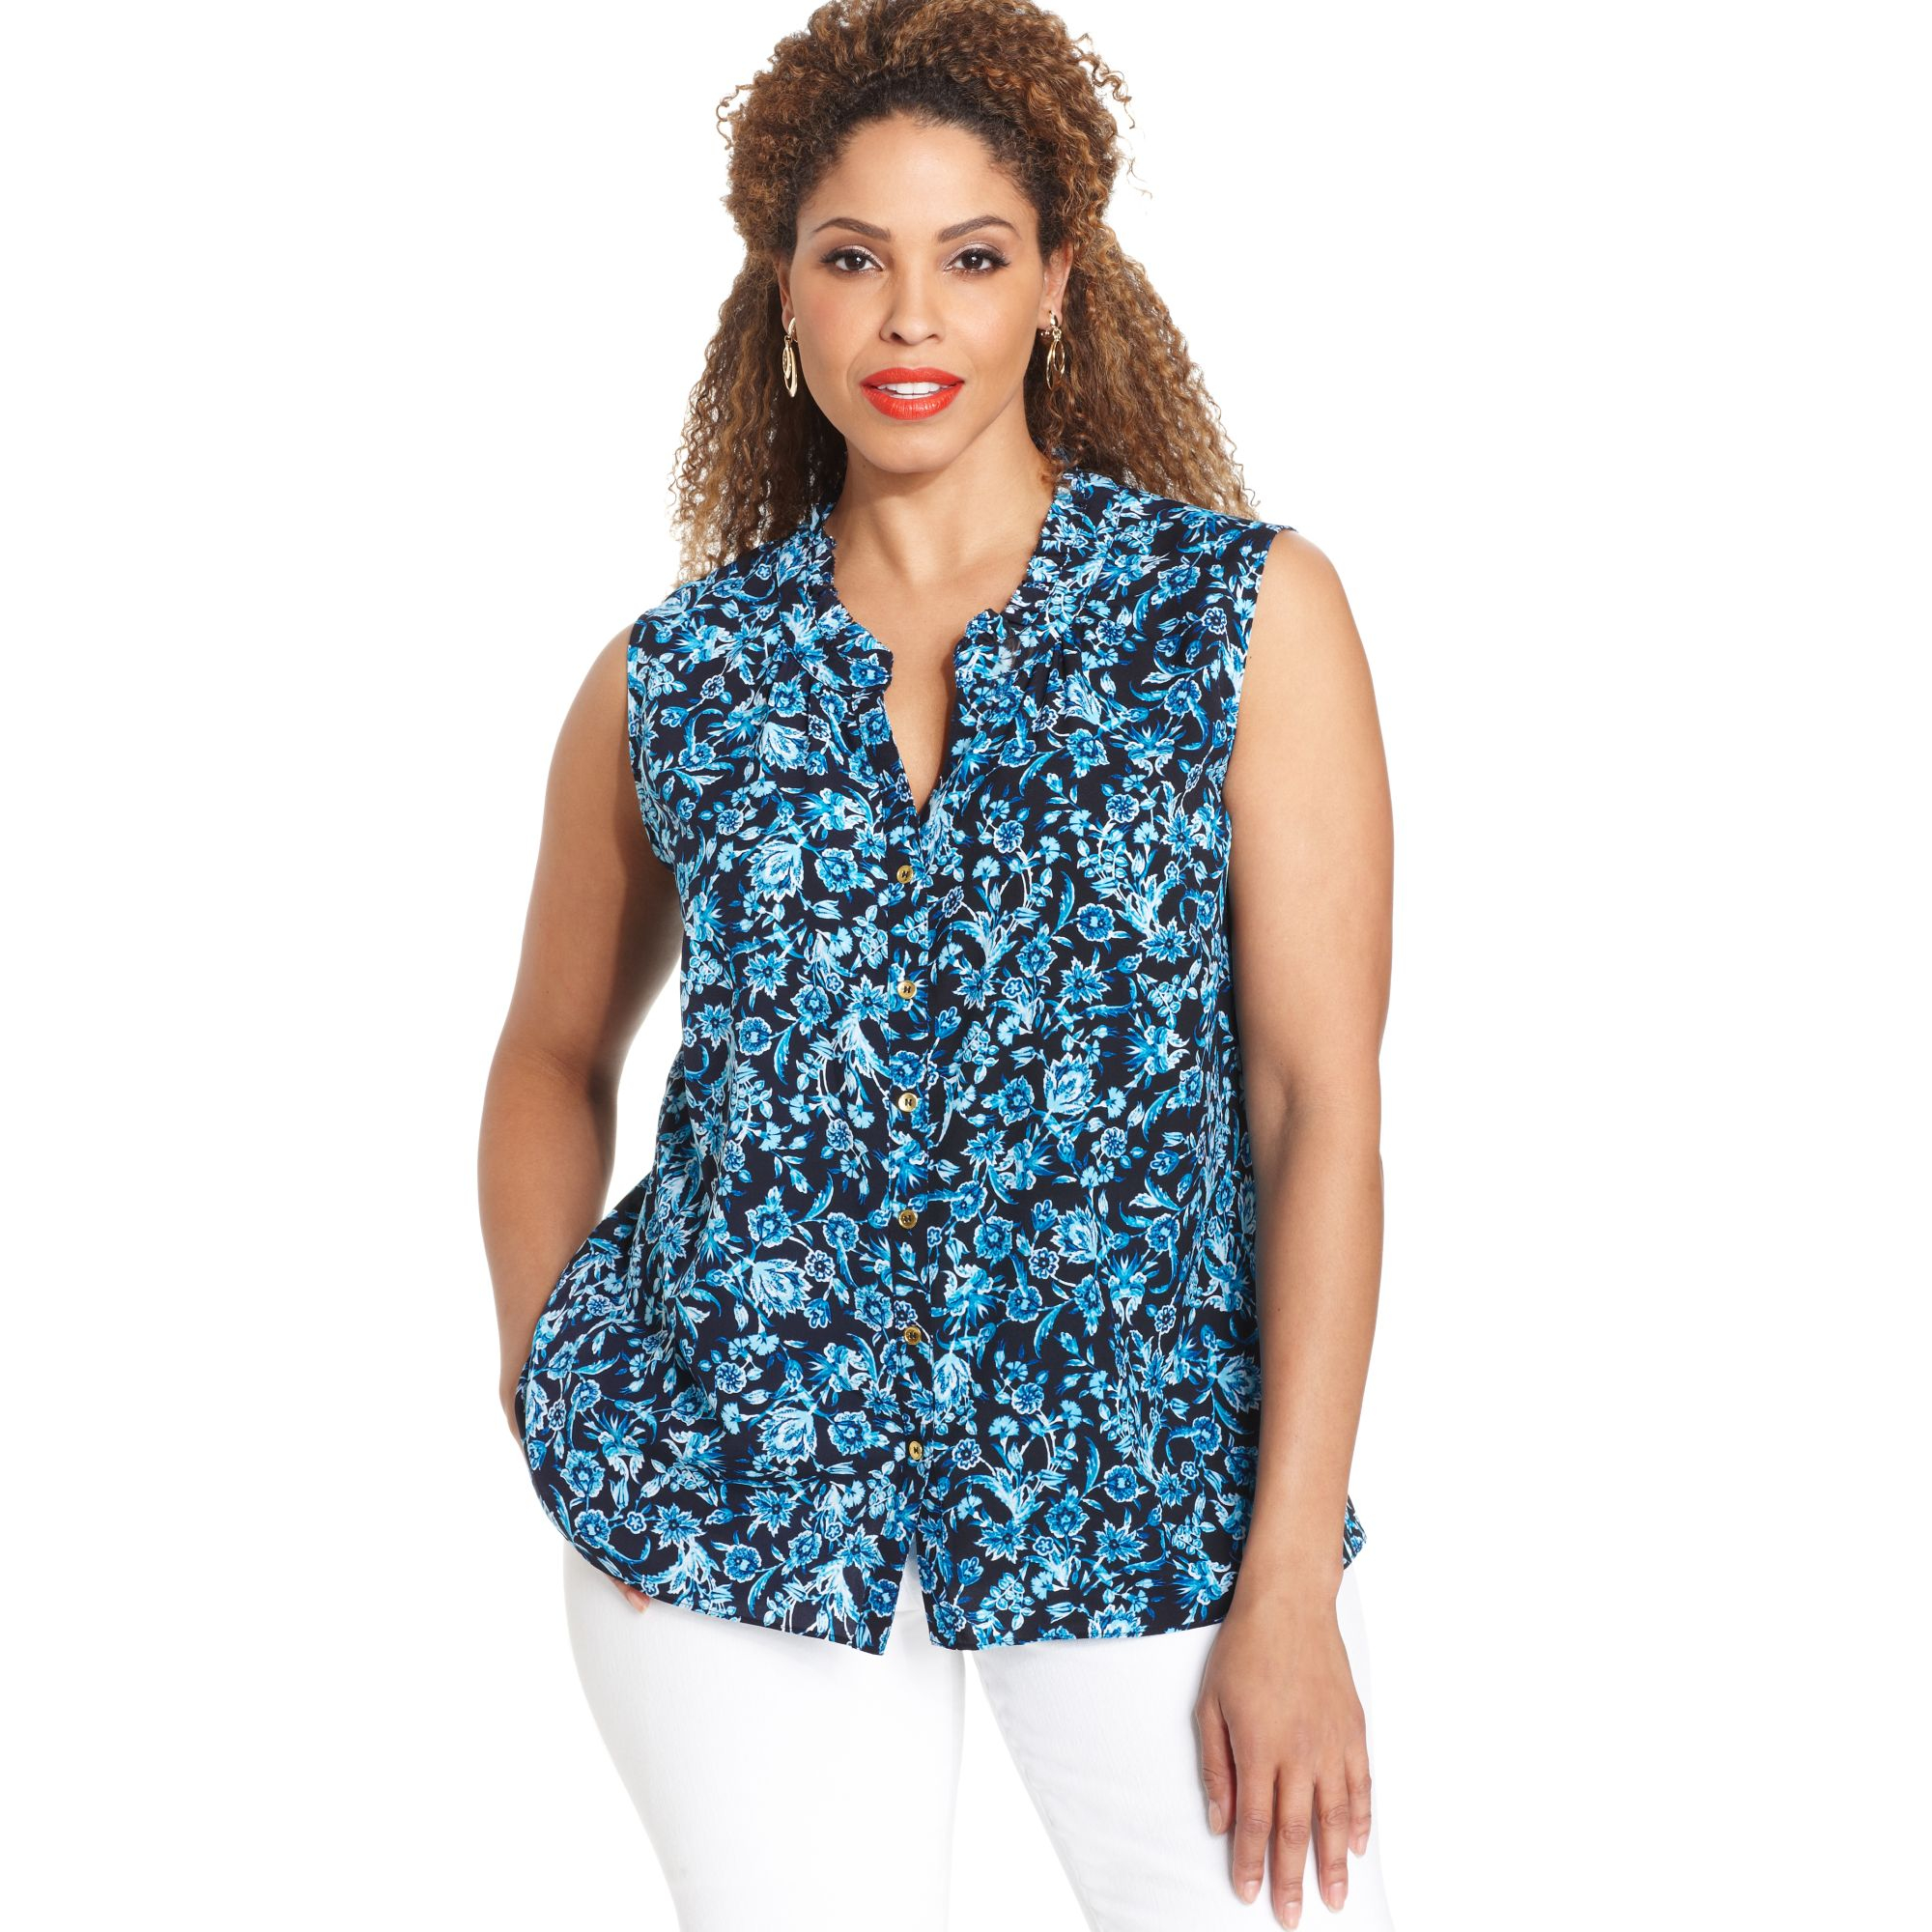 Top plus size clothing stores Cheap online clothing stores